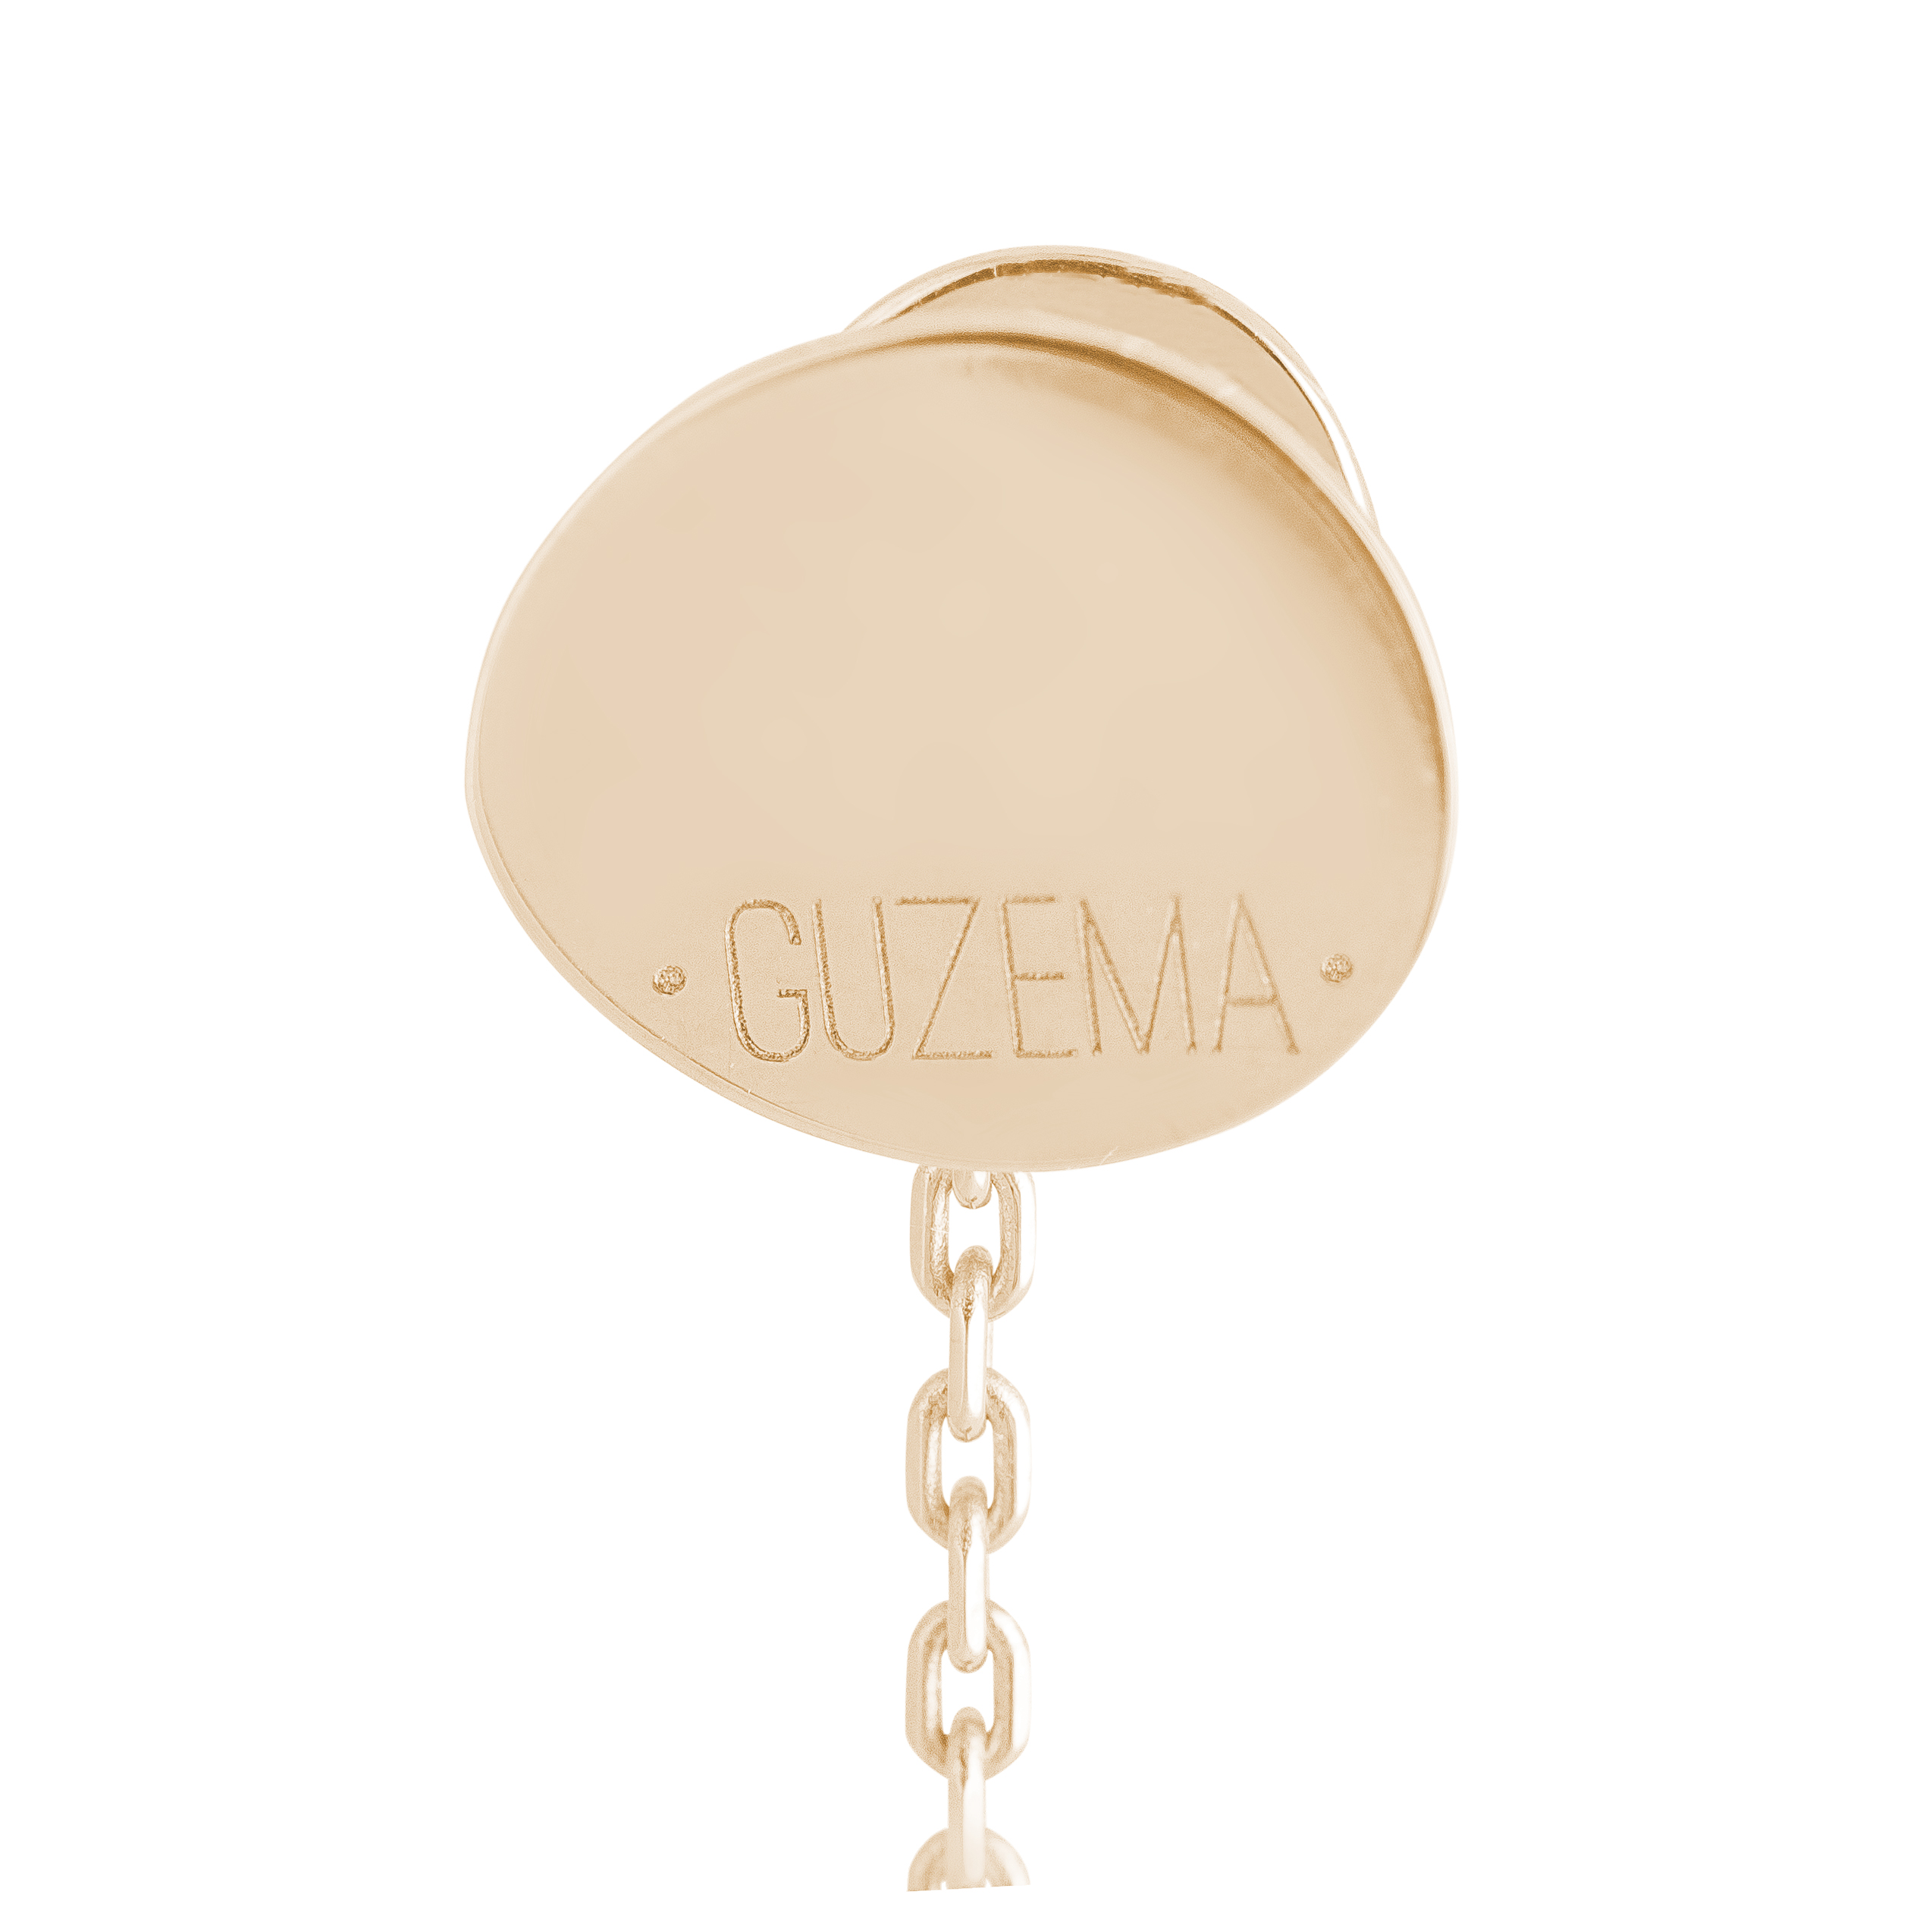 2 Flats Transformer Earrings - Yellow Gold by Guzema Fine Jewellery on curated-crowd.com